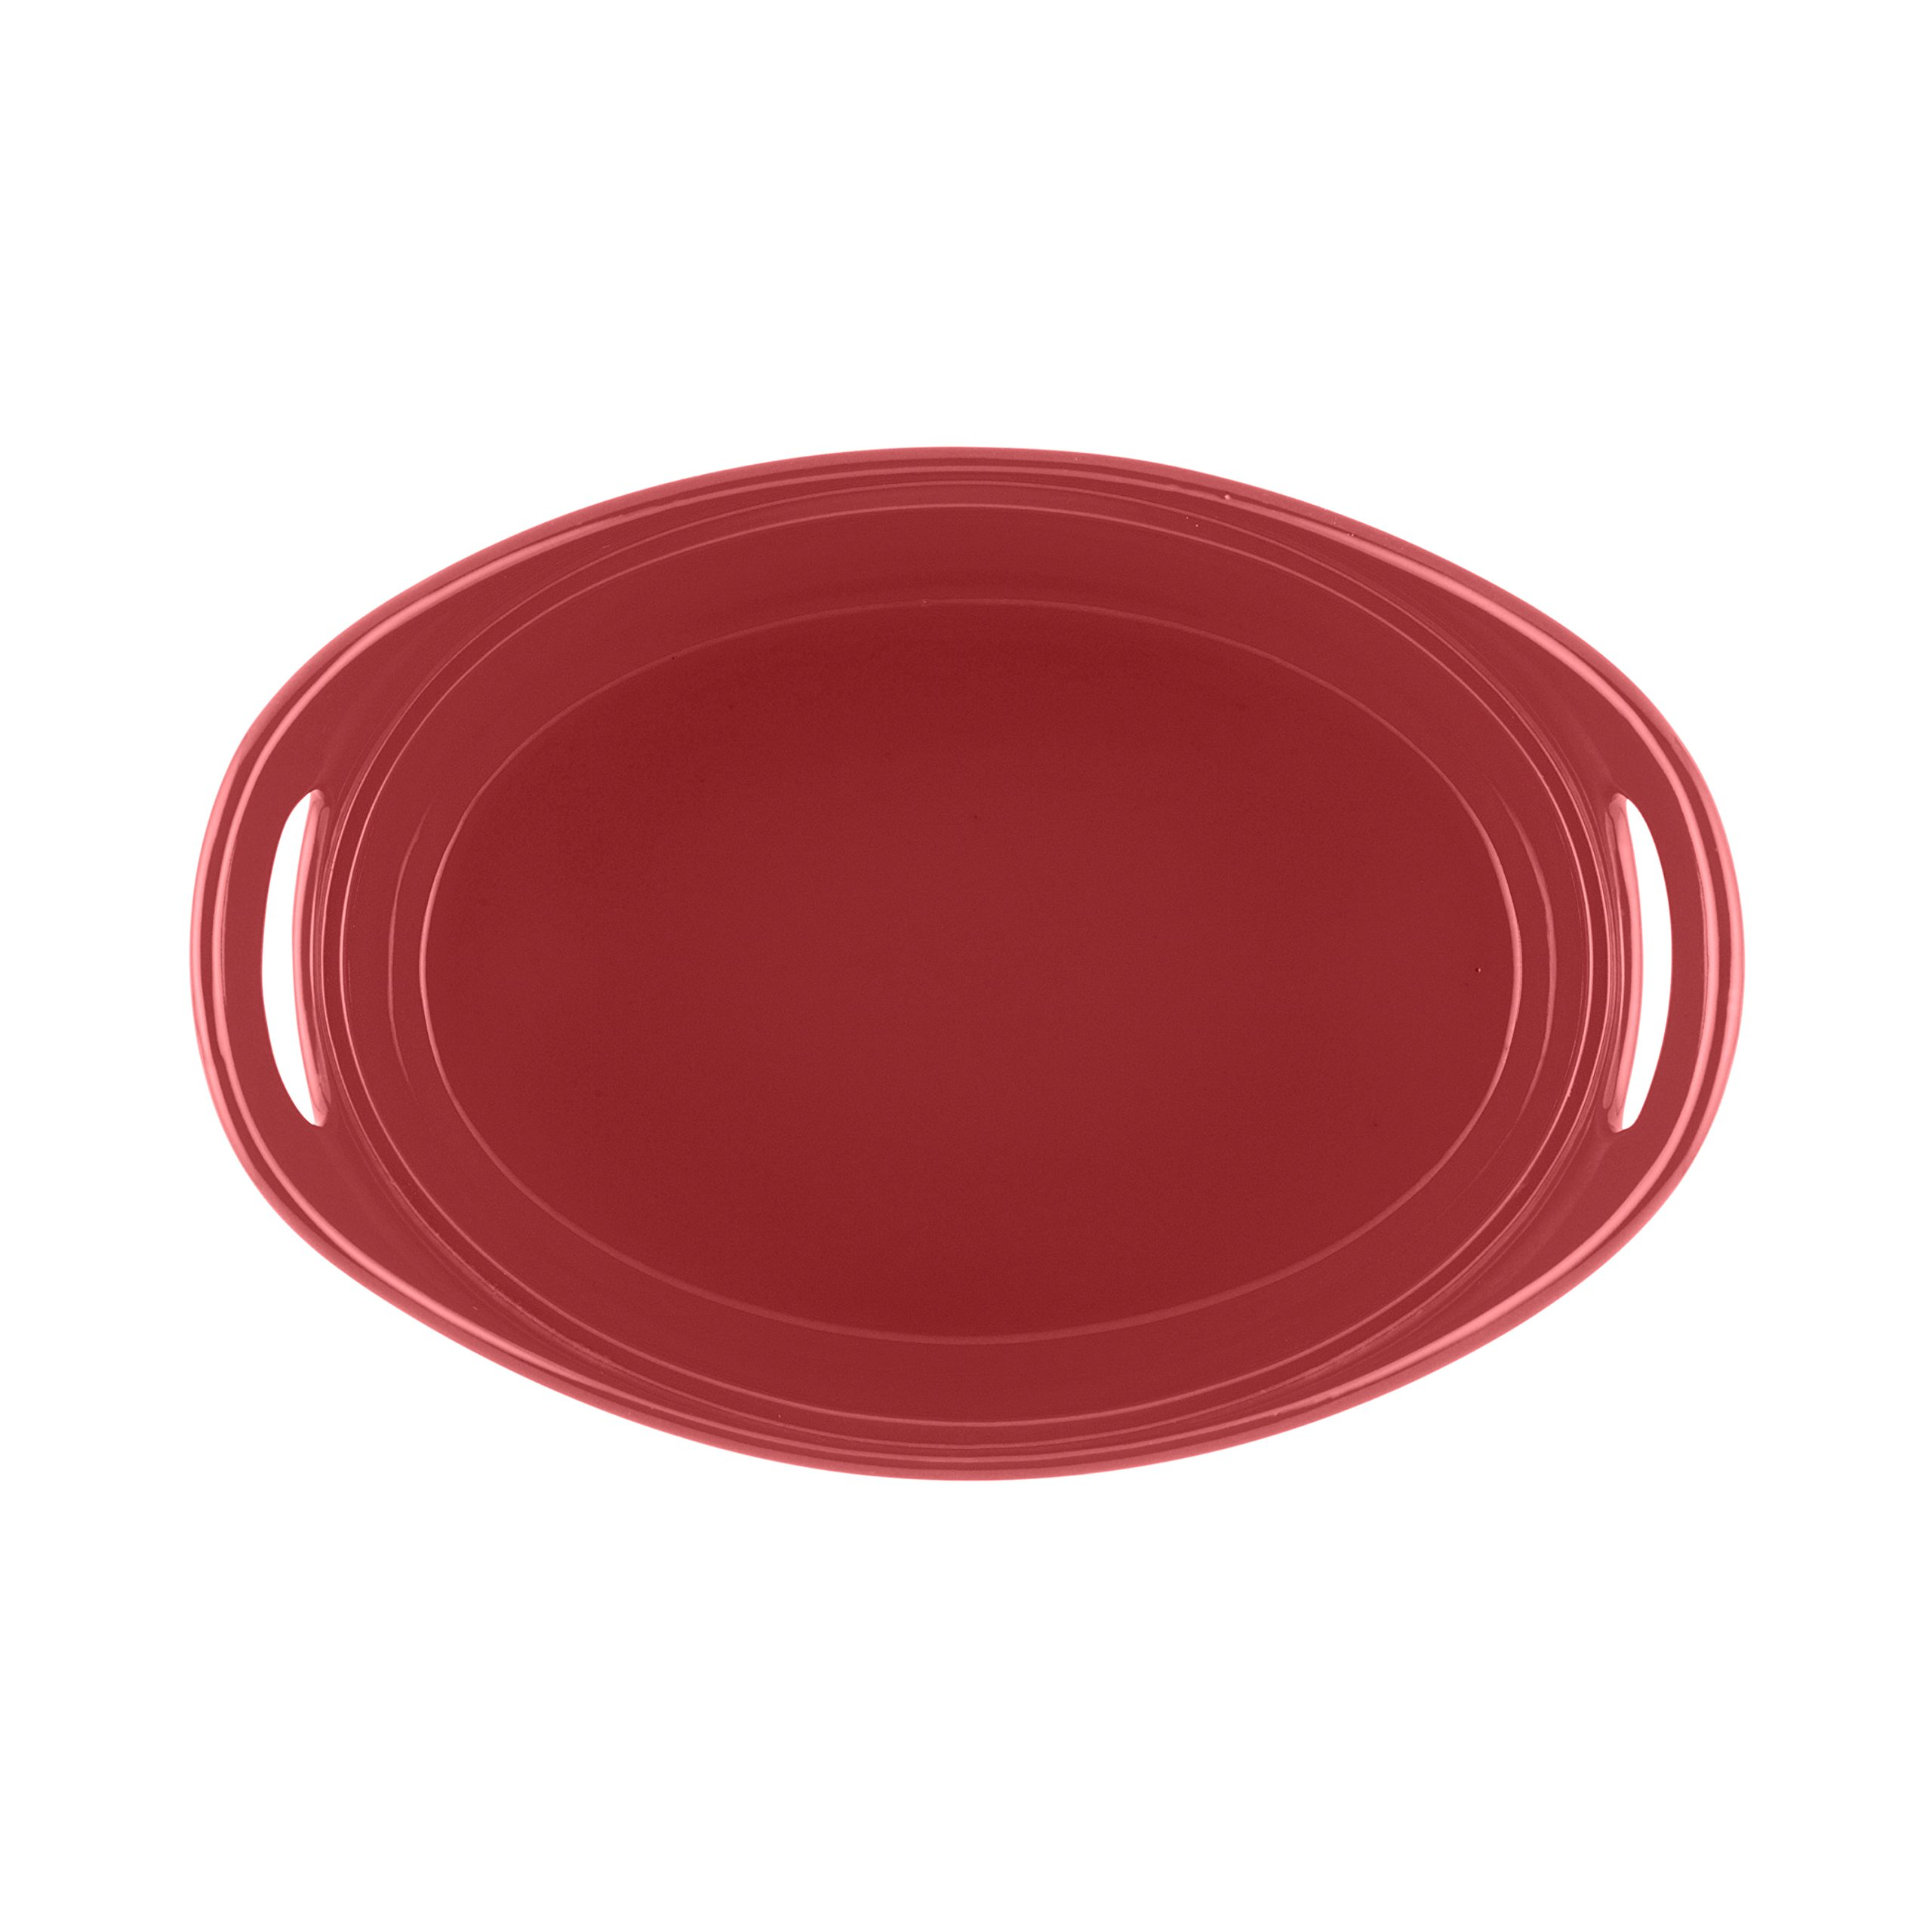 Rachael Ray Stoneware 3-Piece Serving Salad Set, Red by Rachael Ray (Image #3)